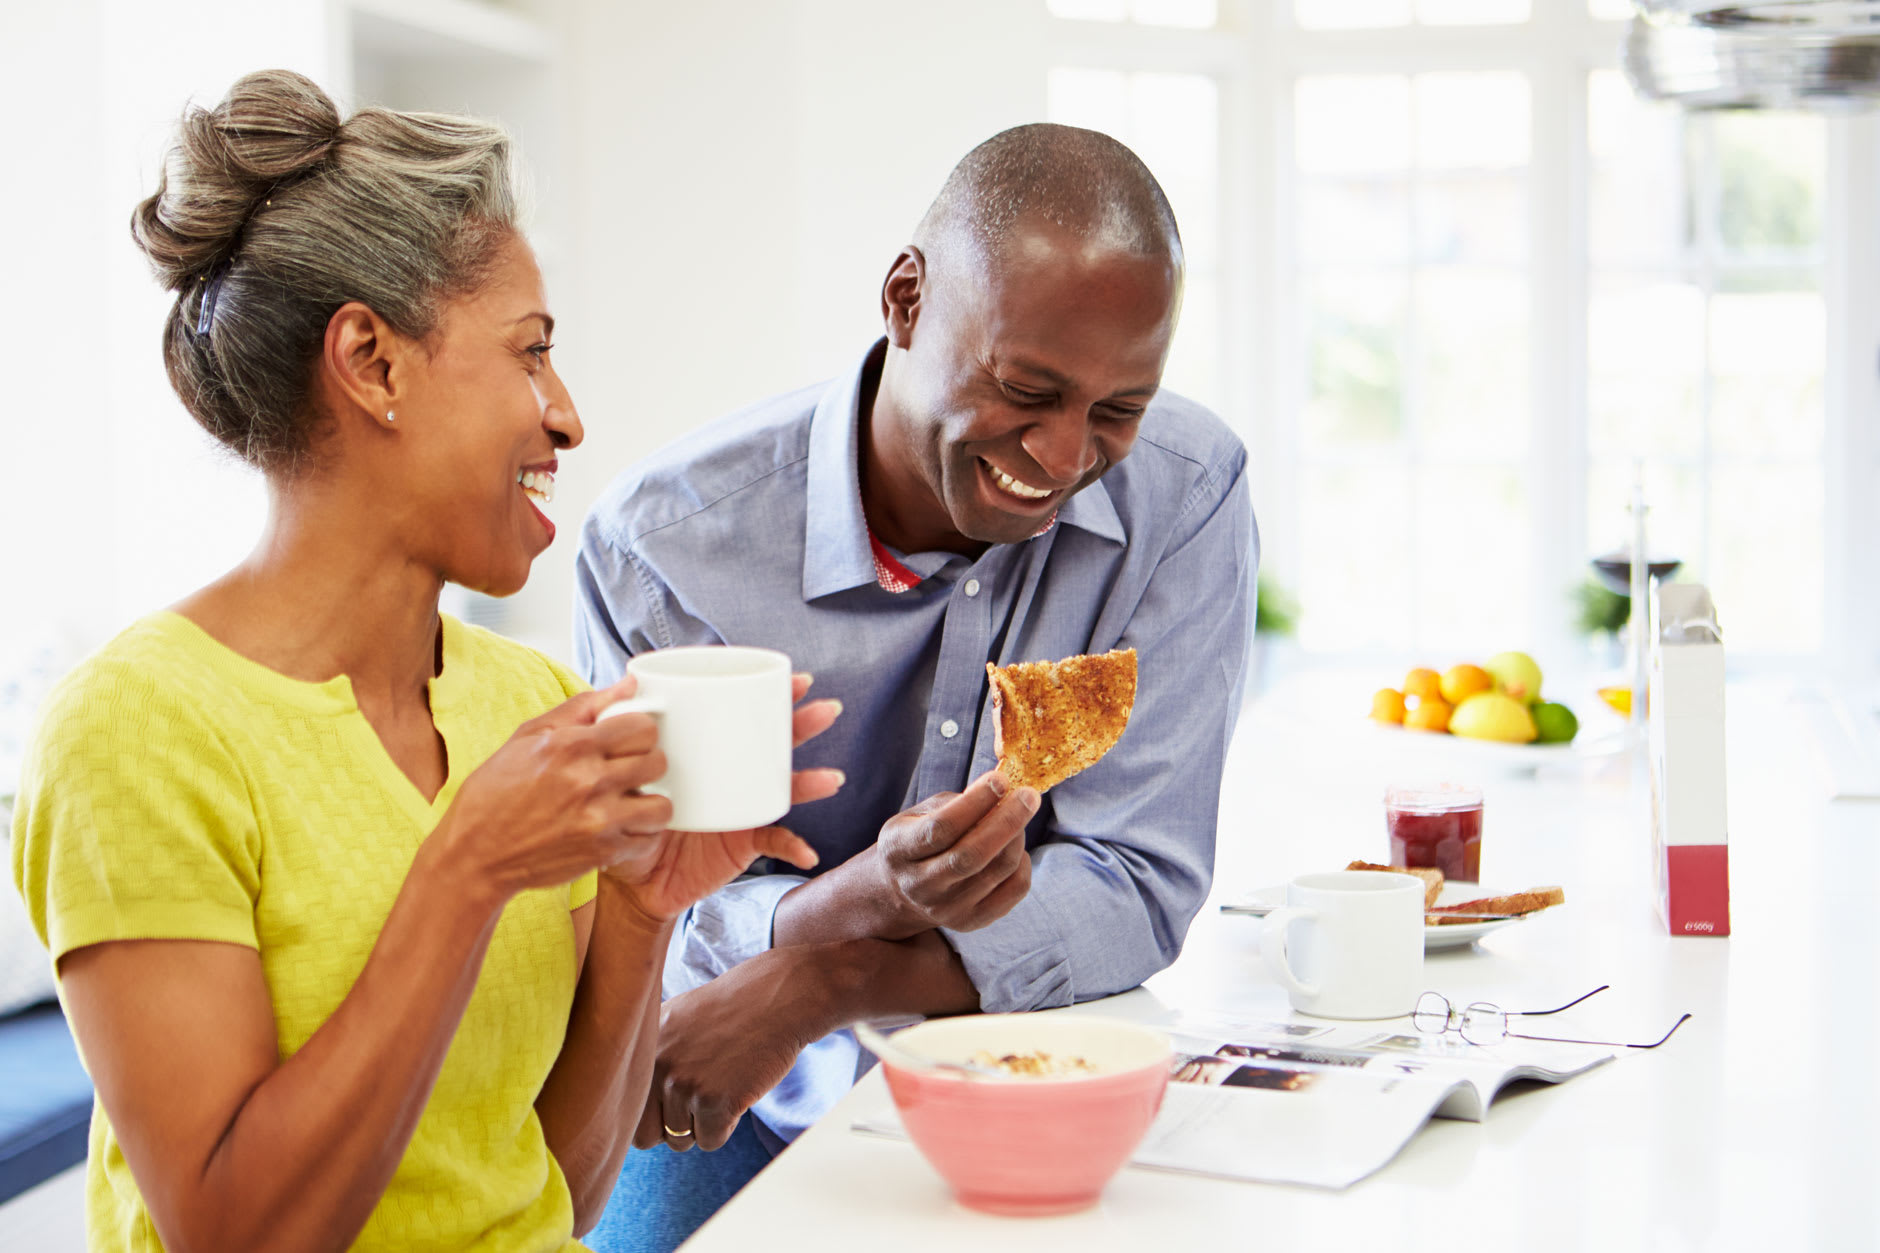 A smiling couple in their 40s are eating pizza and drinking coffee. The man is confident wearing dentures because he has discovered Fixodent's strongest denture adhesive.